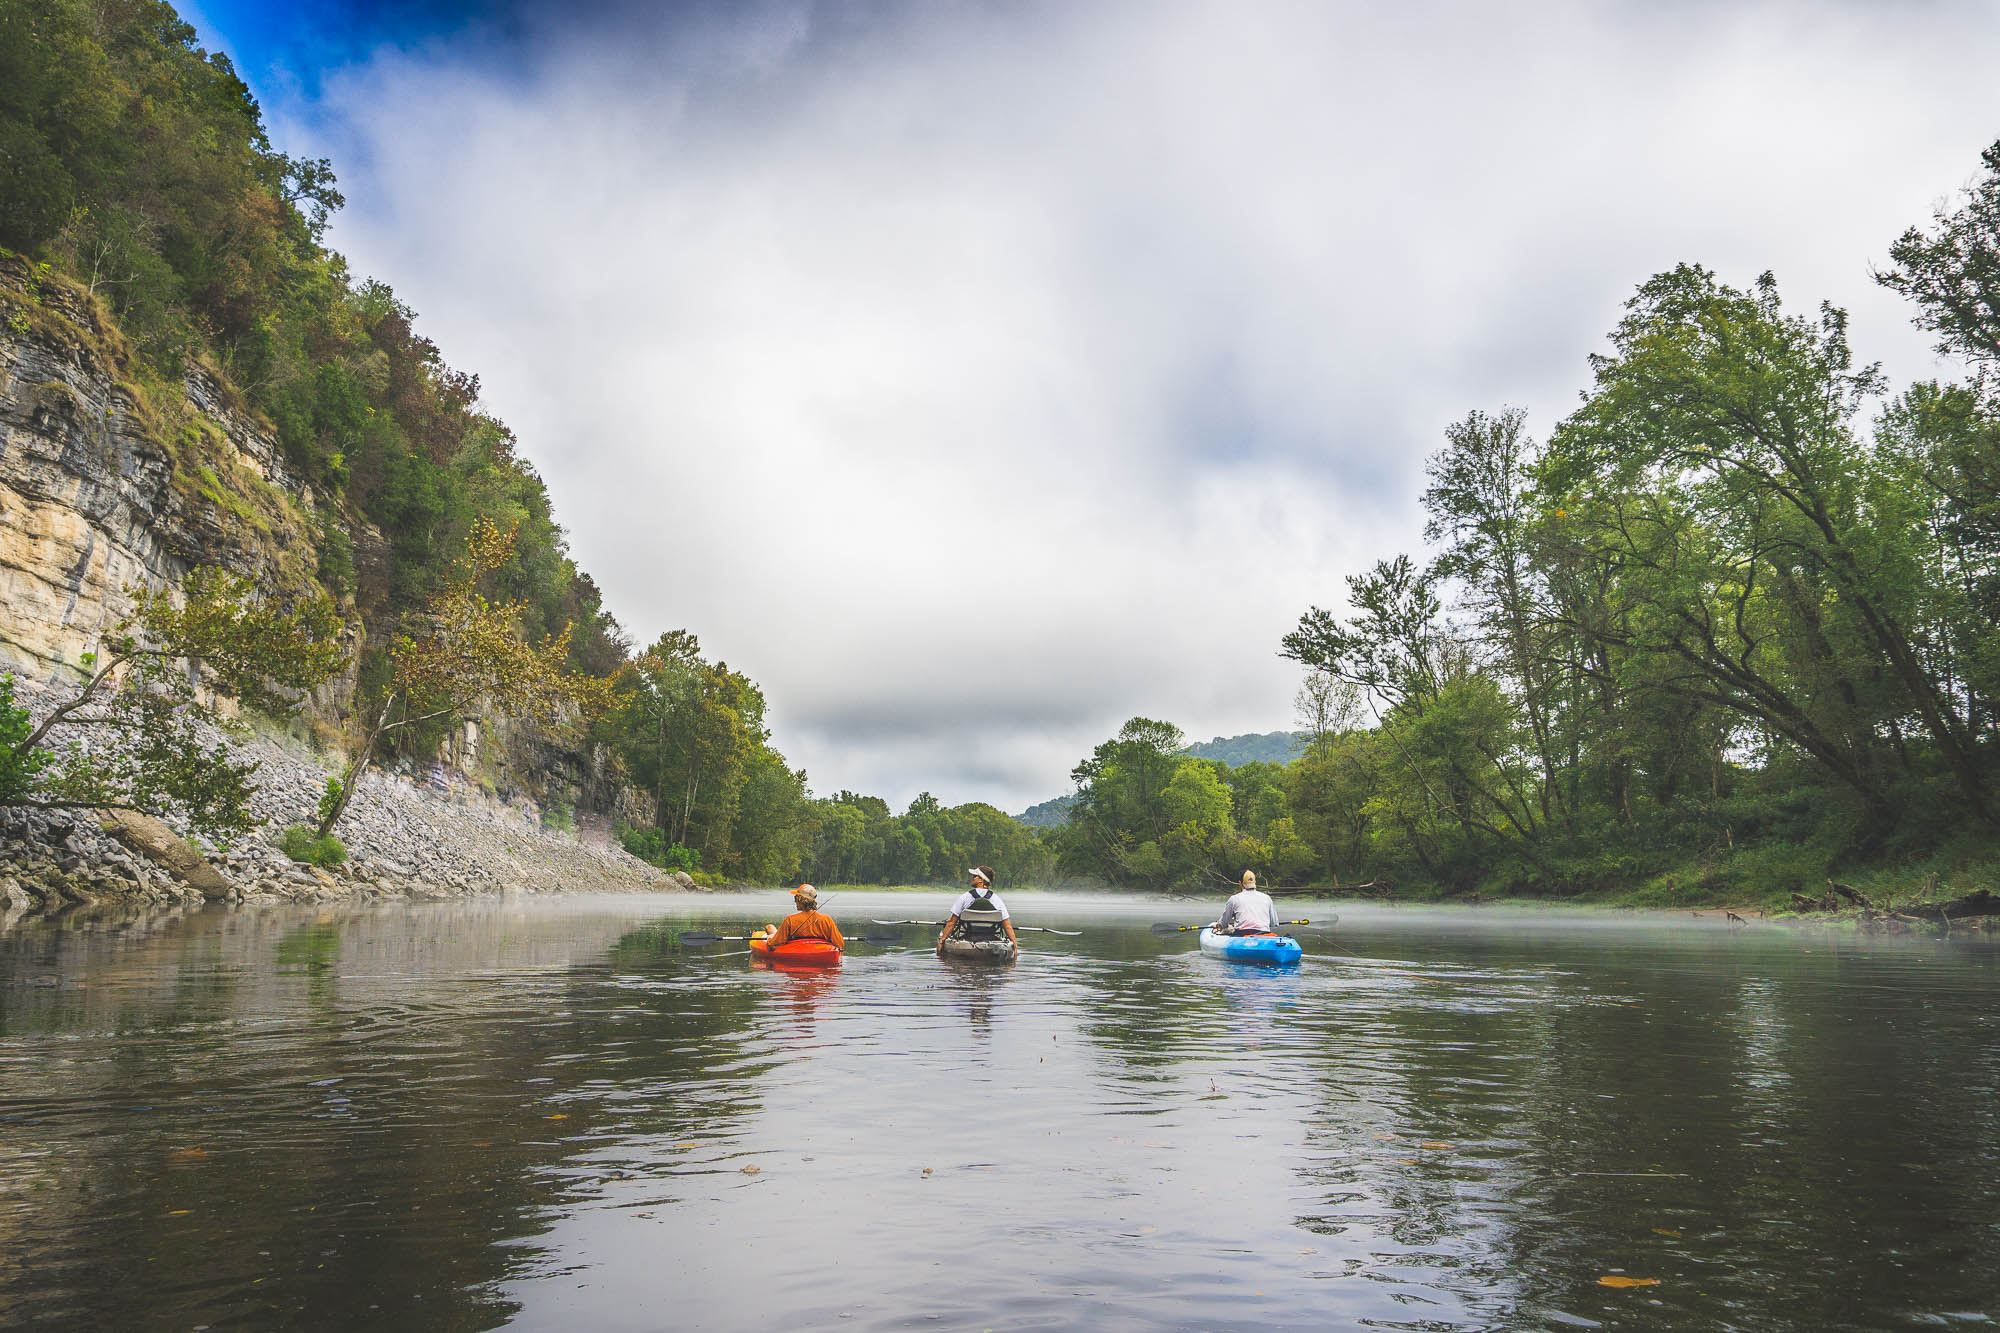 Appalachia_River_Adventure_2016_Compressed_for_Social-12.jpg